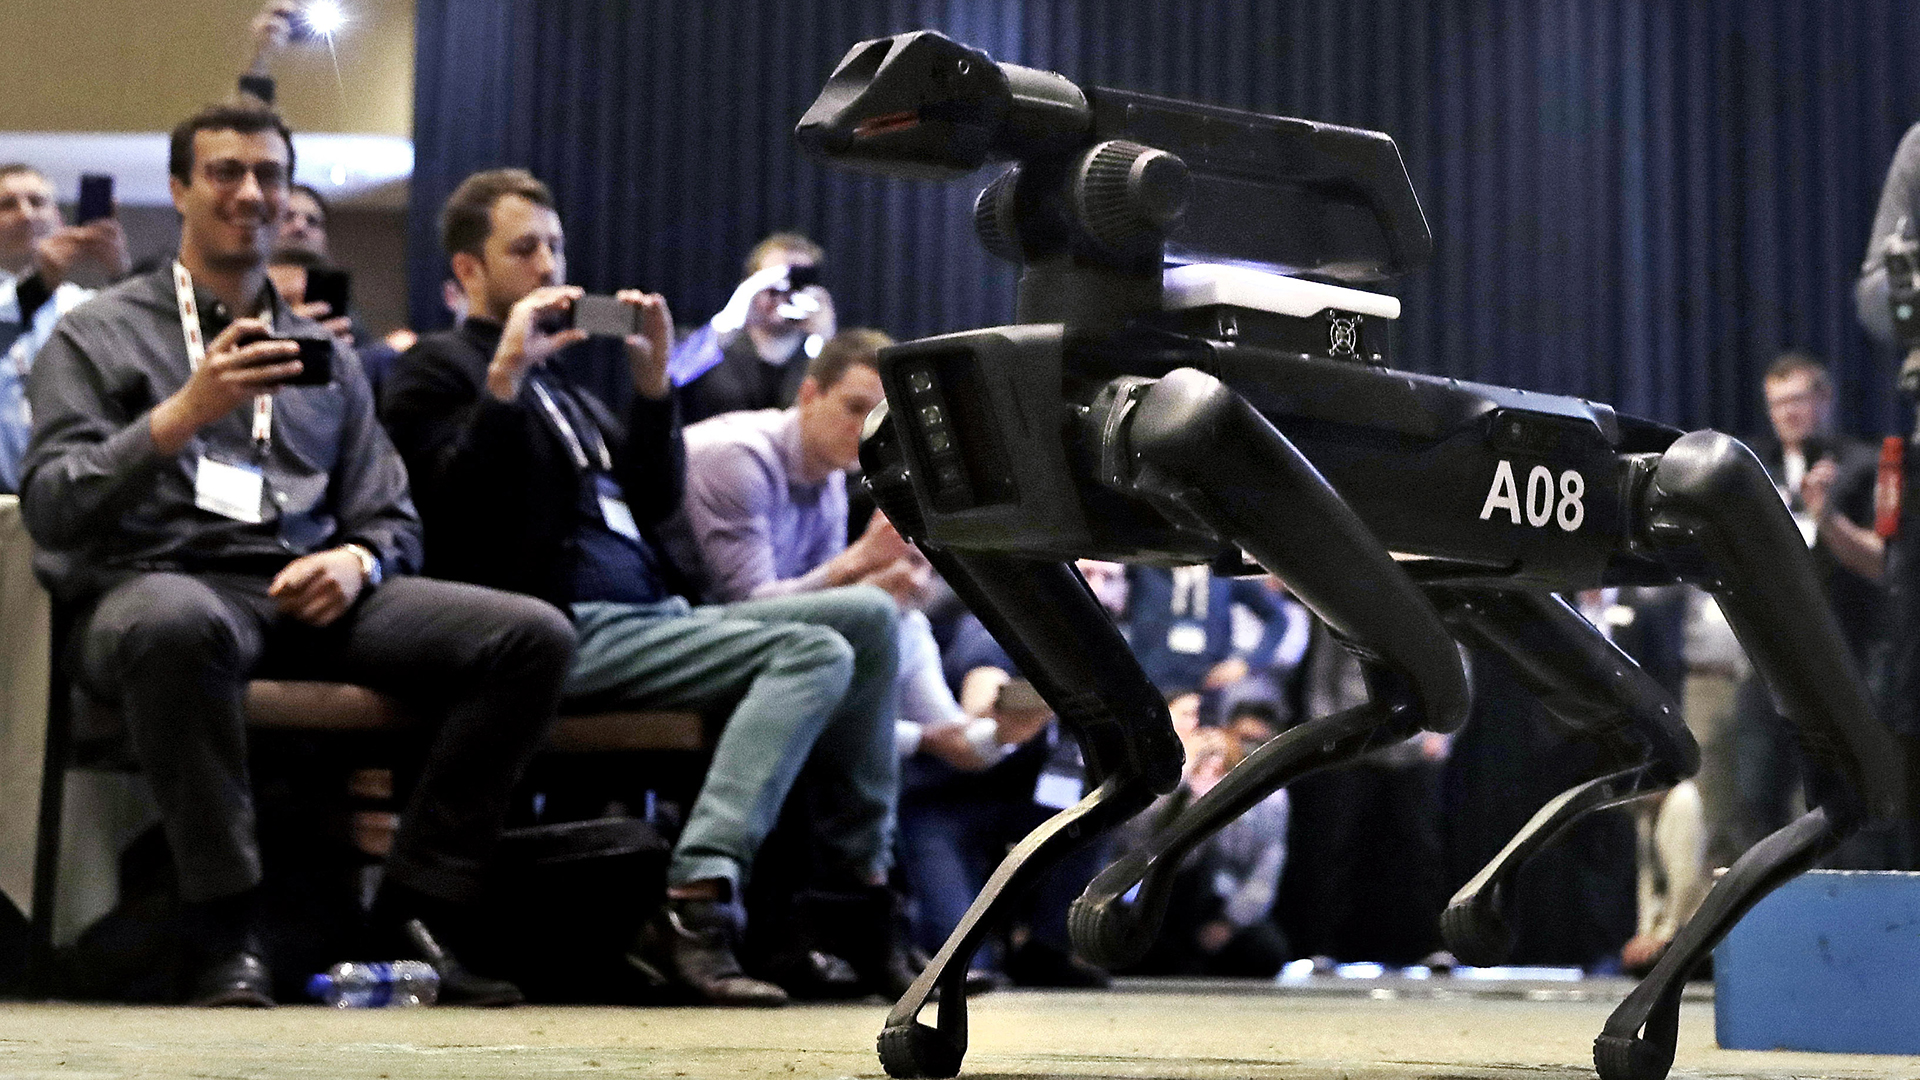 Boston Dynamics, maker of fearsome animal robots, slowly emerges from stealth